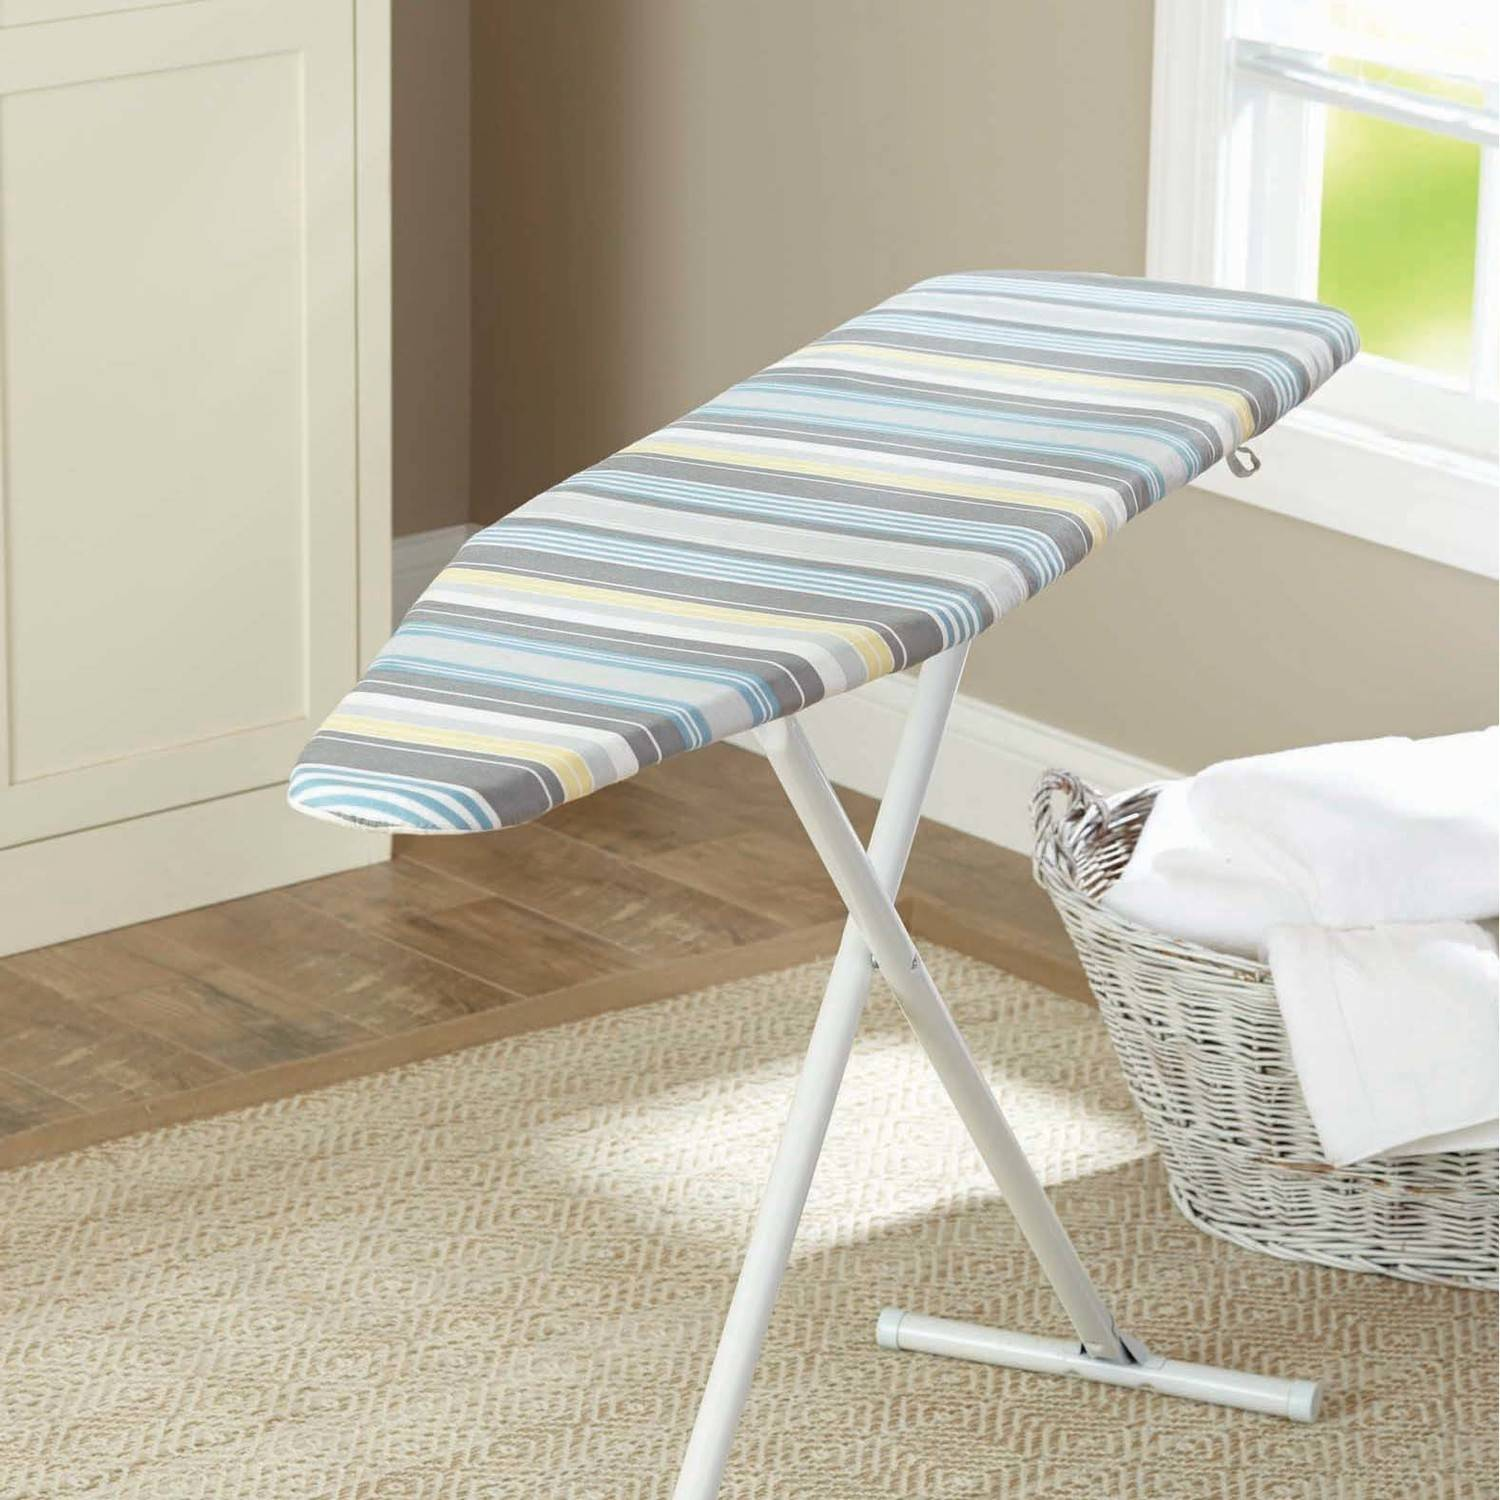 Better Homes and Gardens Reversible Ironing Board Pad and Cover, Casual Stripe